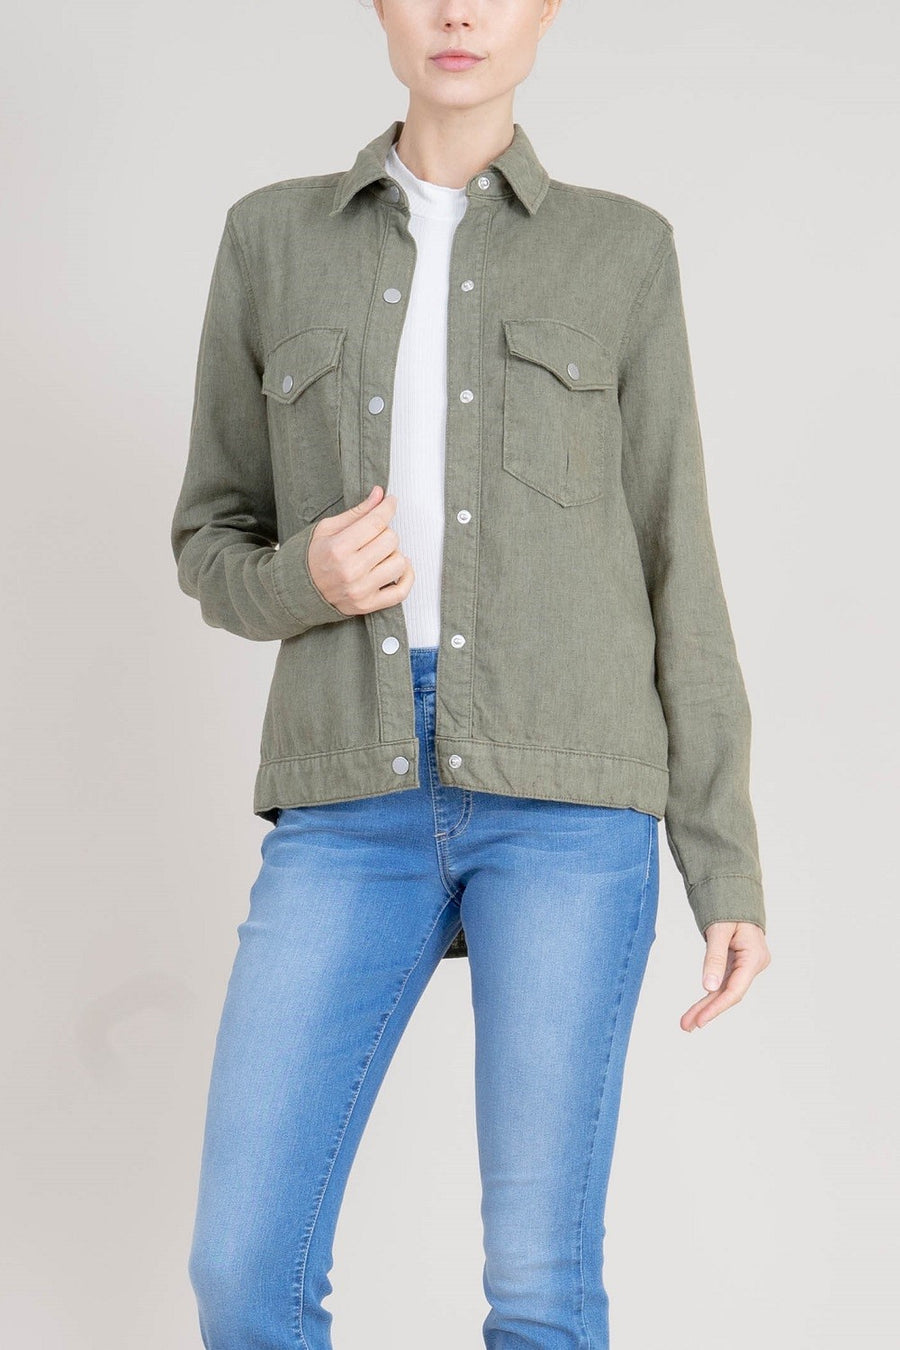 Gwen Linen Tencel Lightweight Chore Jacket - level99jeans